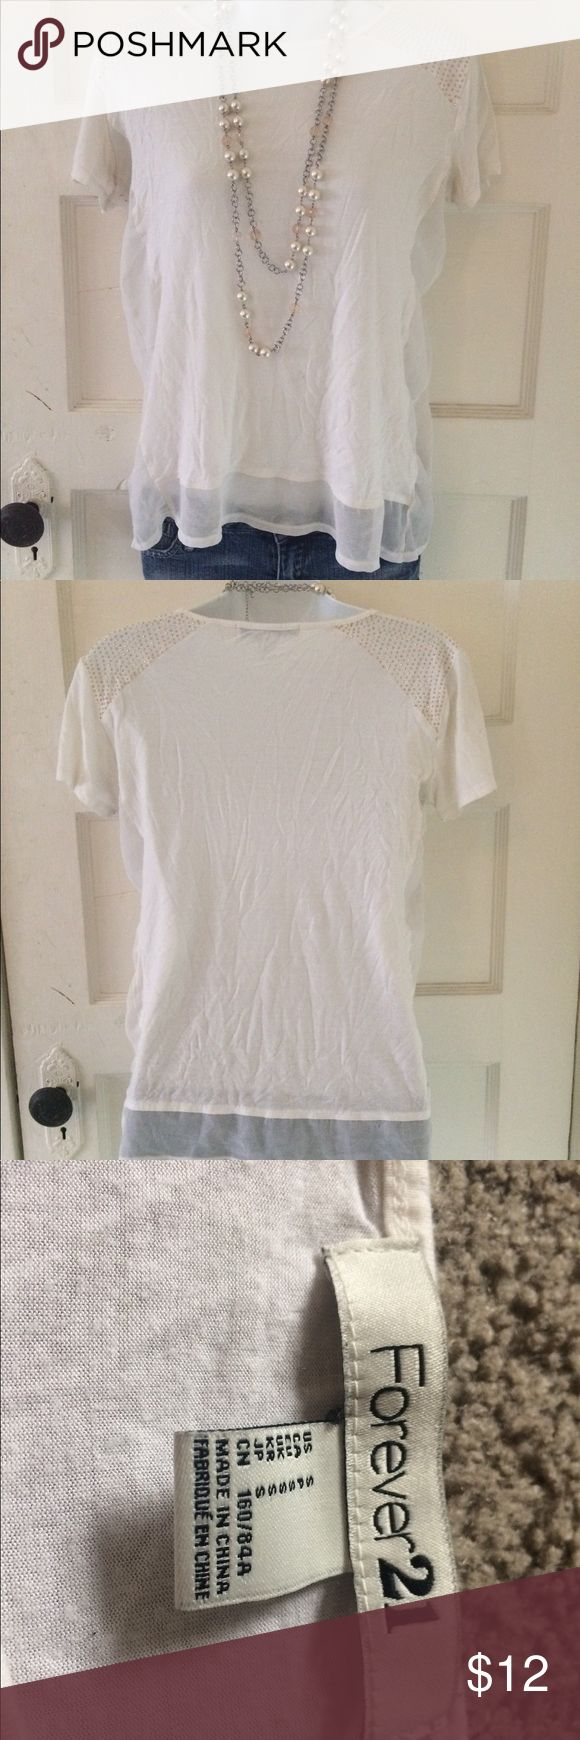 NWOT SIZE SMALL FOREVER 21 BEIGE SHORT SLEEVE TOP Forever 21 size small beige short sleeve blouse. Flowy and breathable fabric. Thin see through top layer studded shoulders Forever 21 Tops Blouses